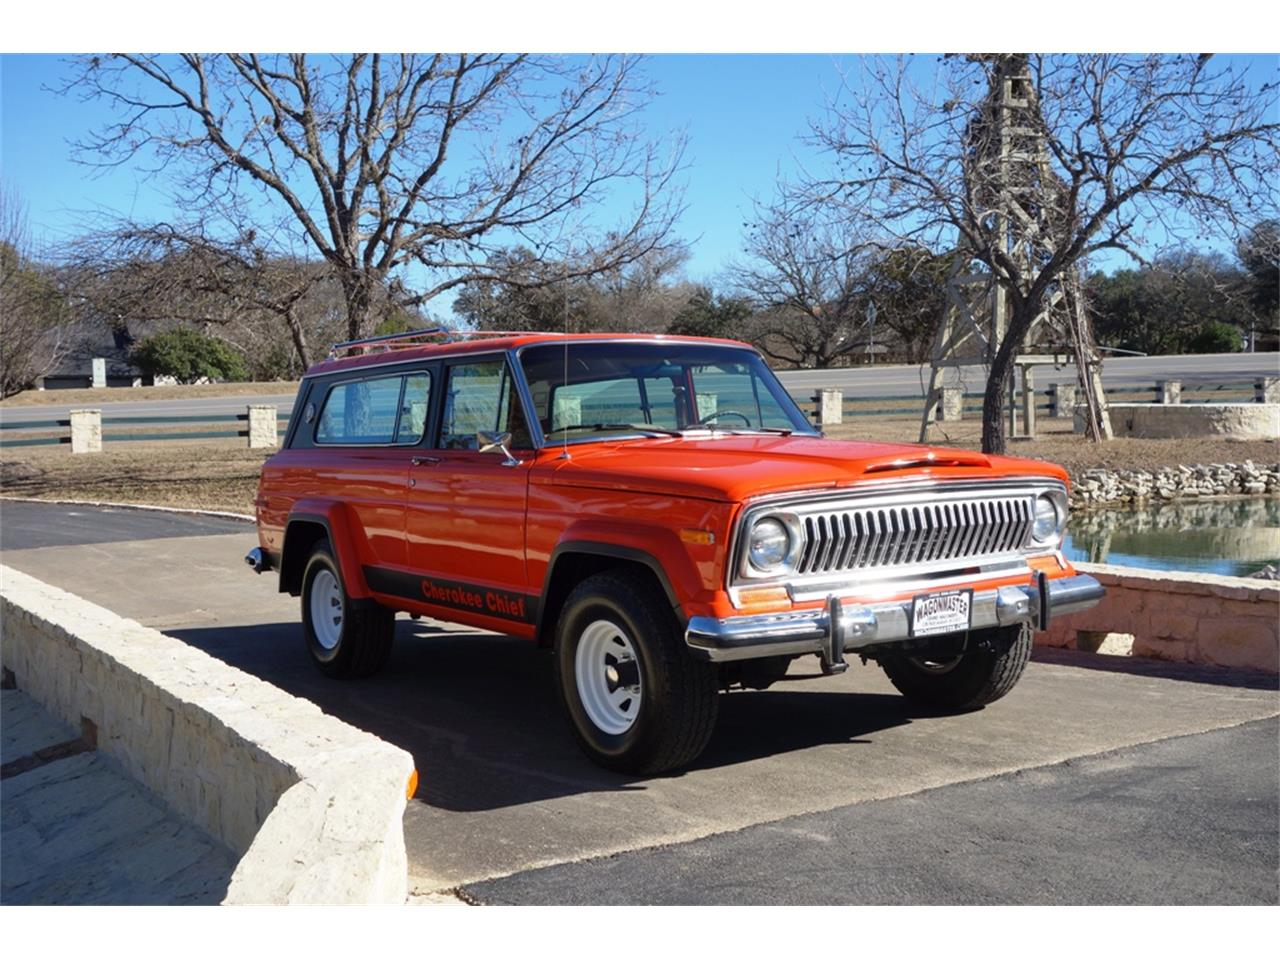 1978 Jeep Cherokee Chief (CC-1020674) for sale in Kerrville, Texas